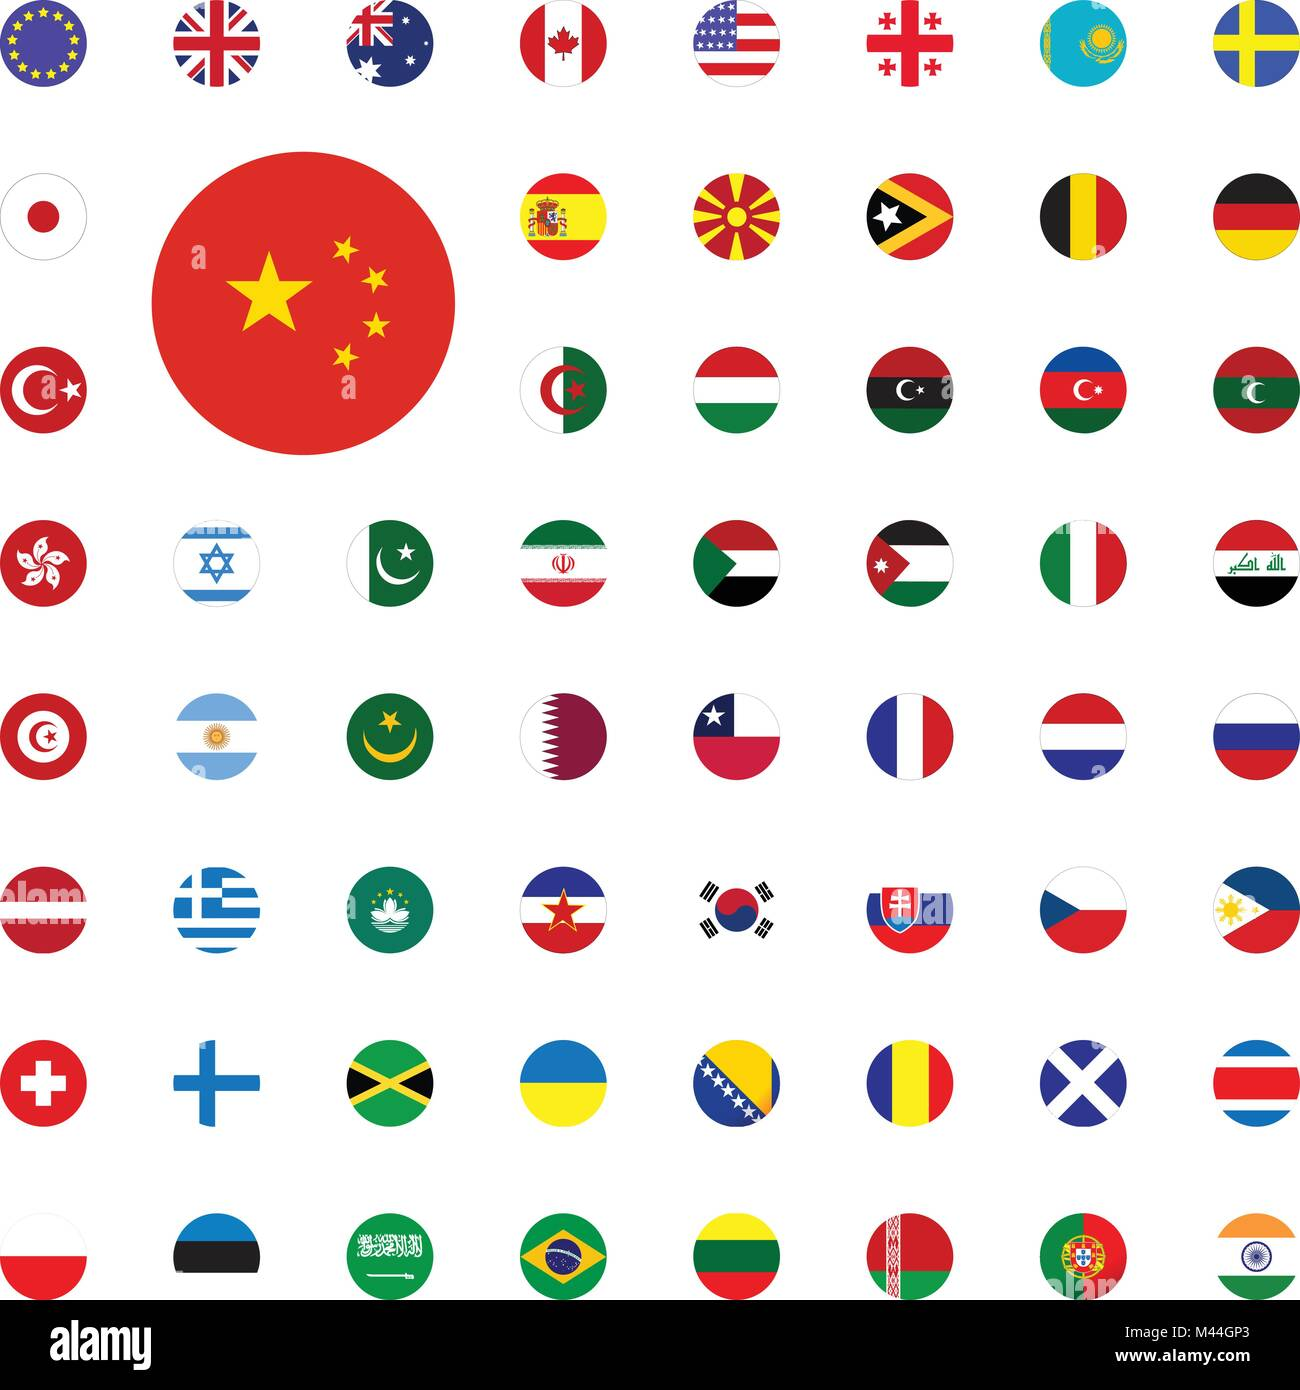 China Round Flag Icon Round World Flags Vector Illustration Icons Stock Vector Image Art Alamy